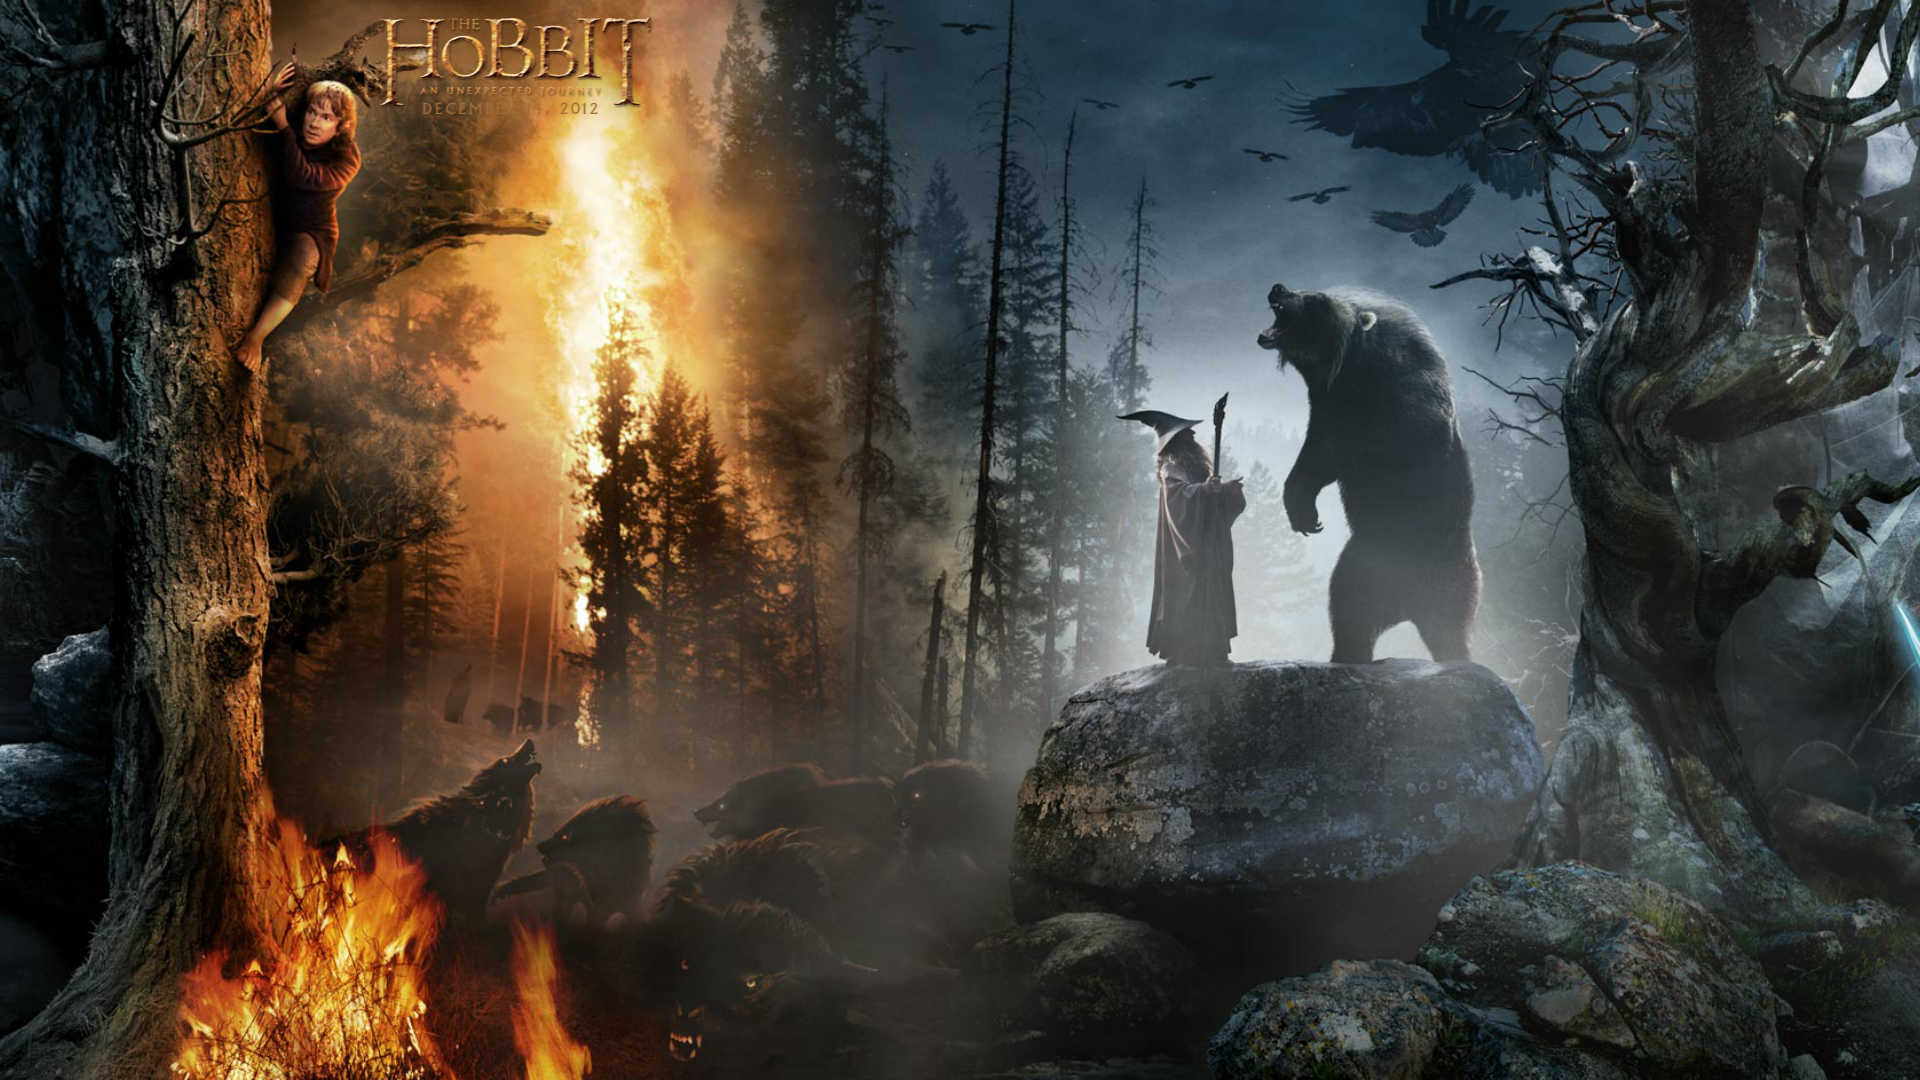 the hobbit an unexpected journey 1920x1080 the hobbit is an upcoming 1920x1080